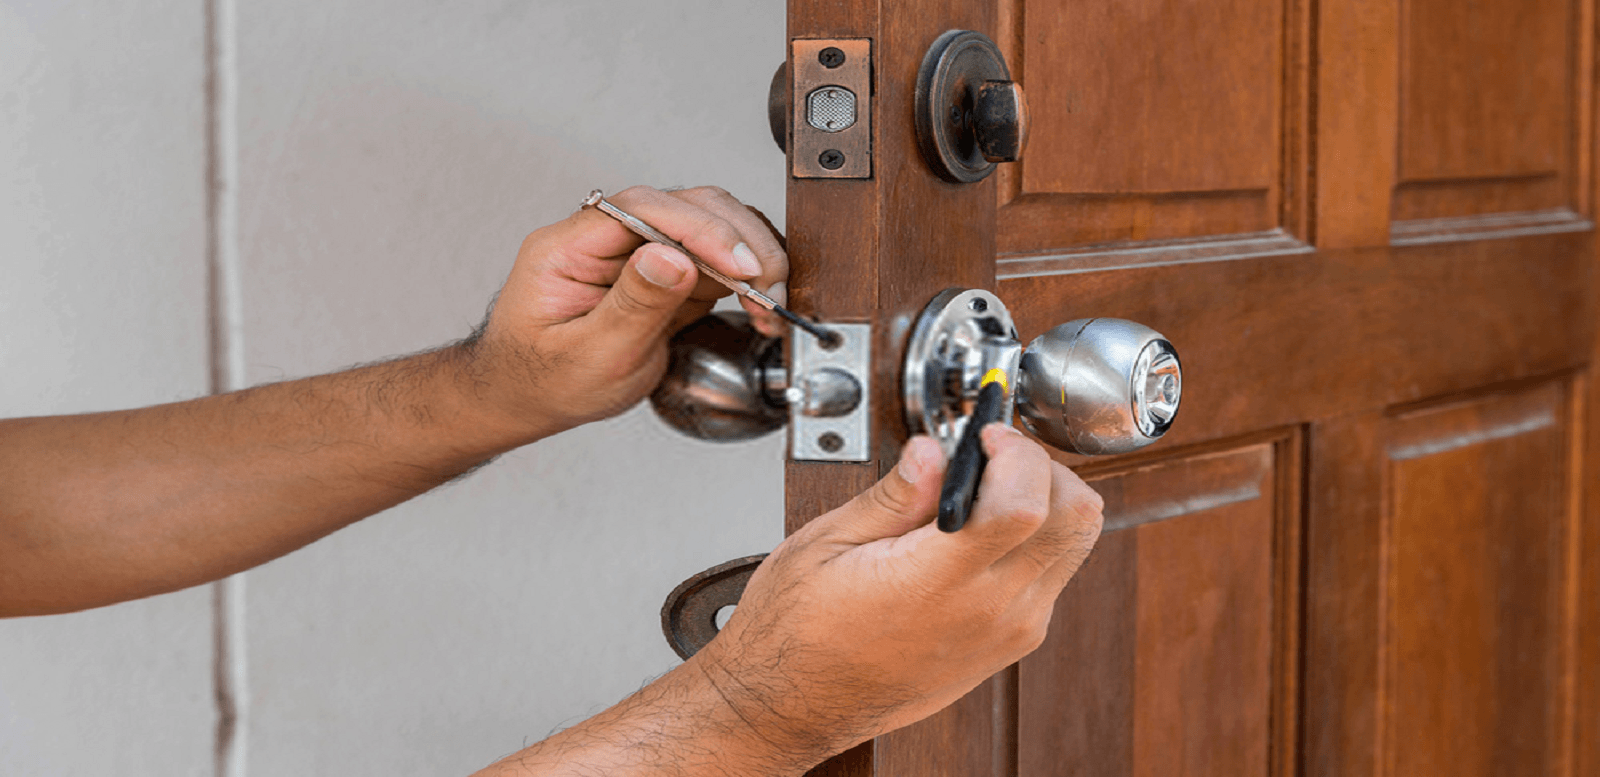 Get Your Door Locks Replaced Only By Experienced Locksmiths